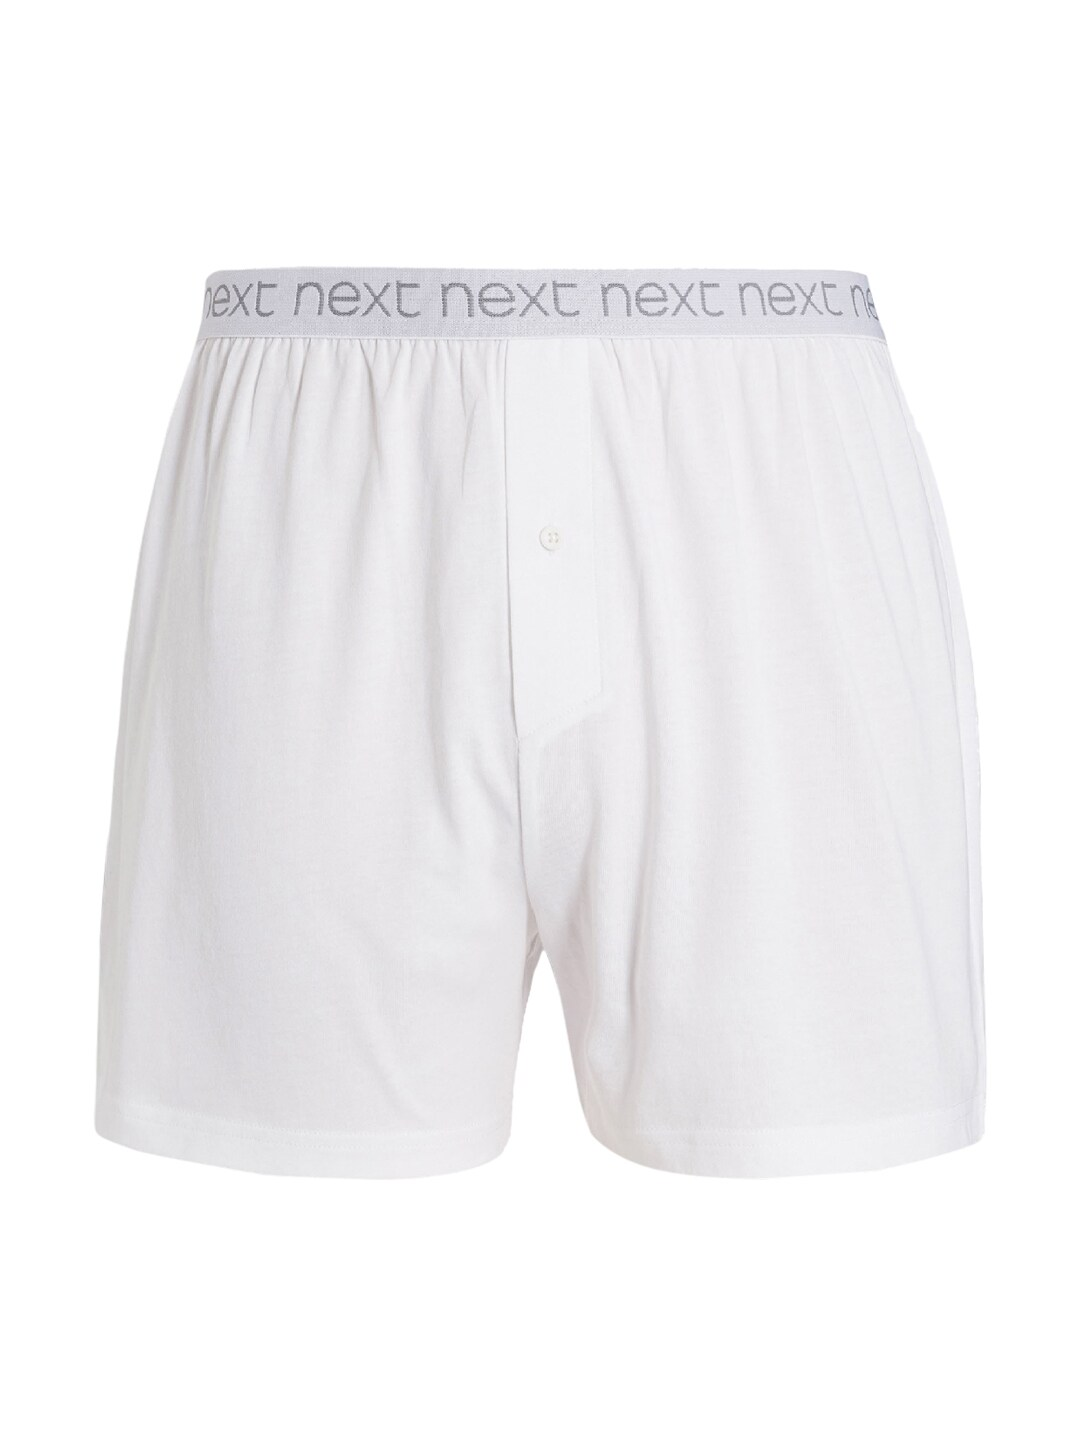 next Men Pack of 4 White Boxers image